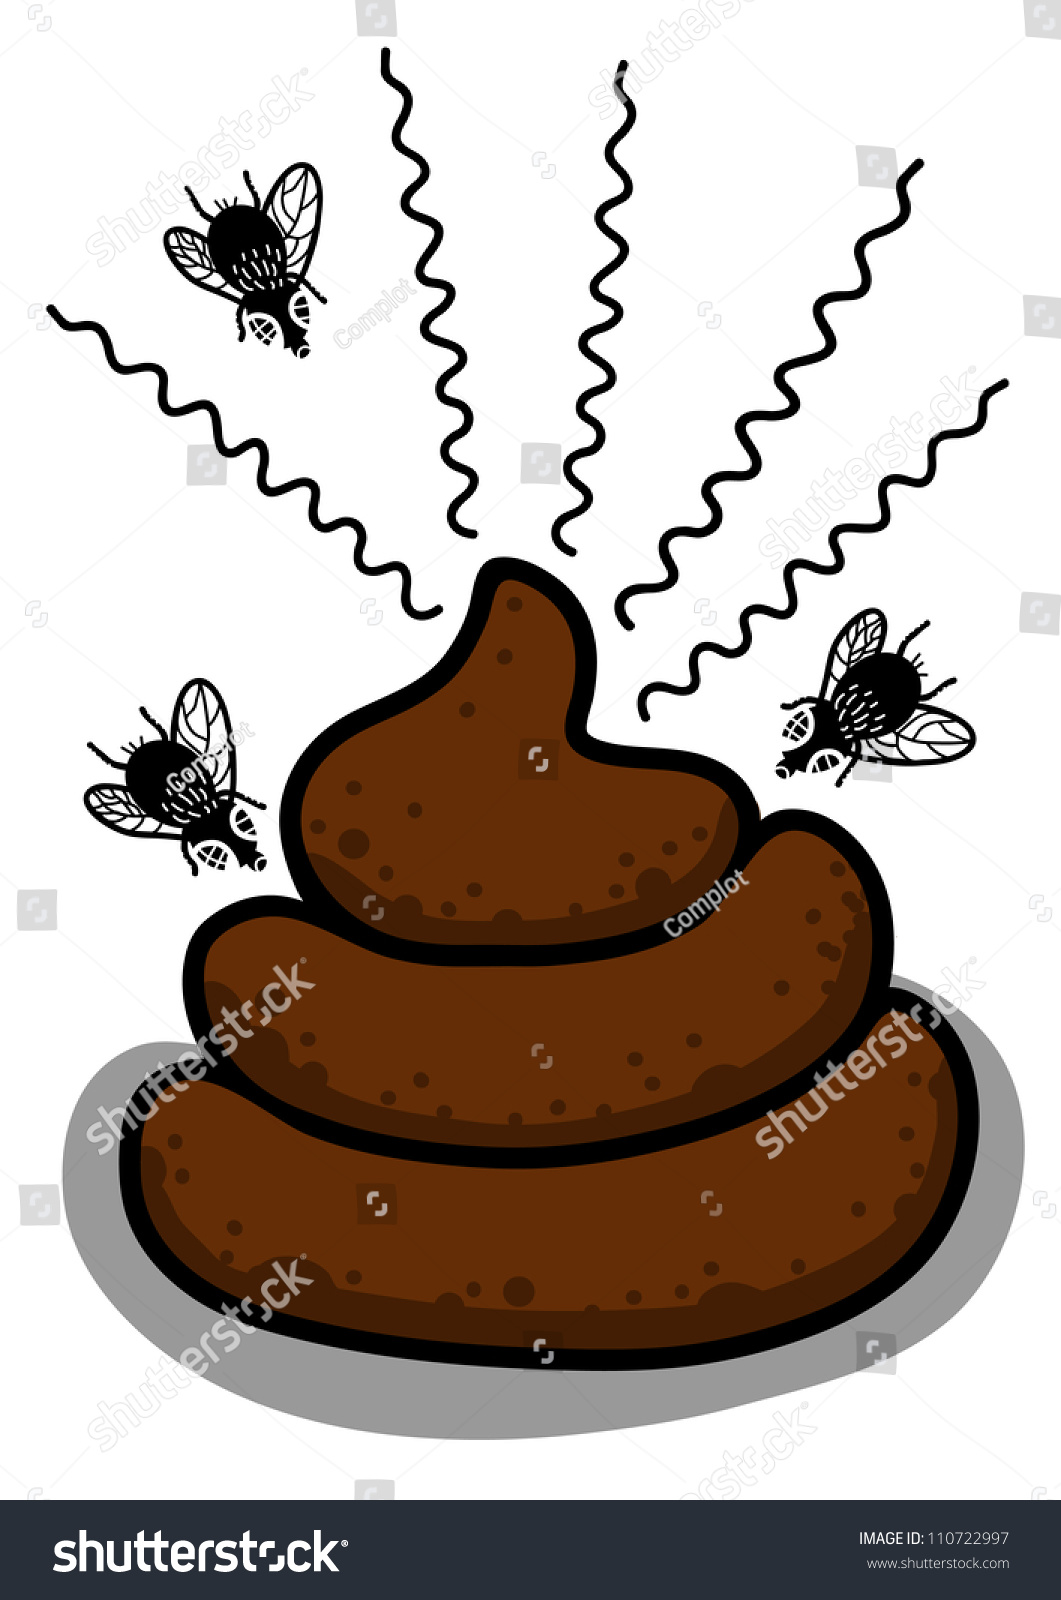 clipart poop pictures - photo #45